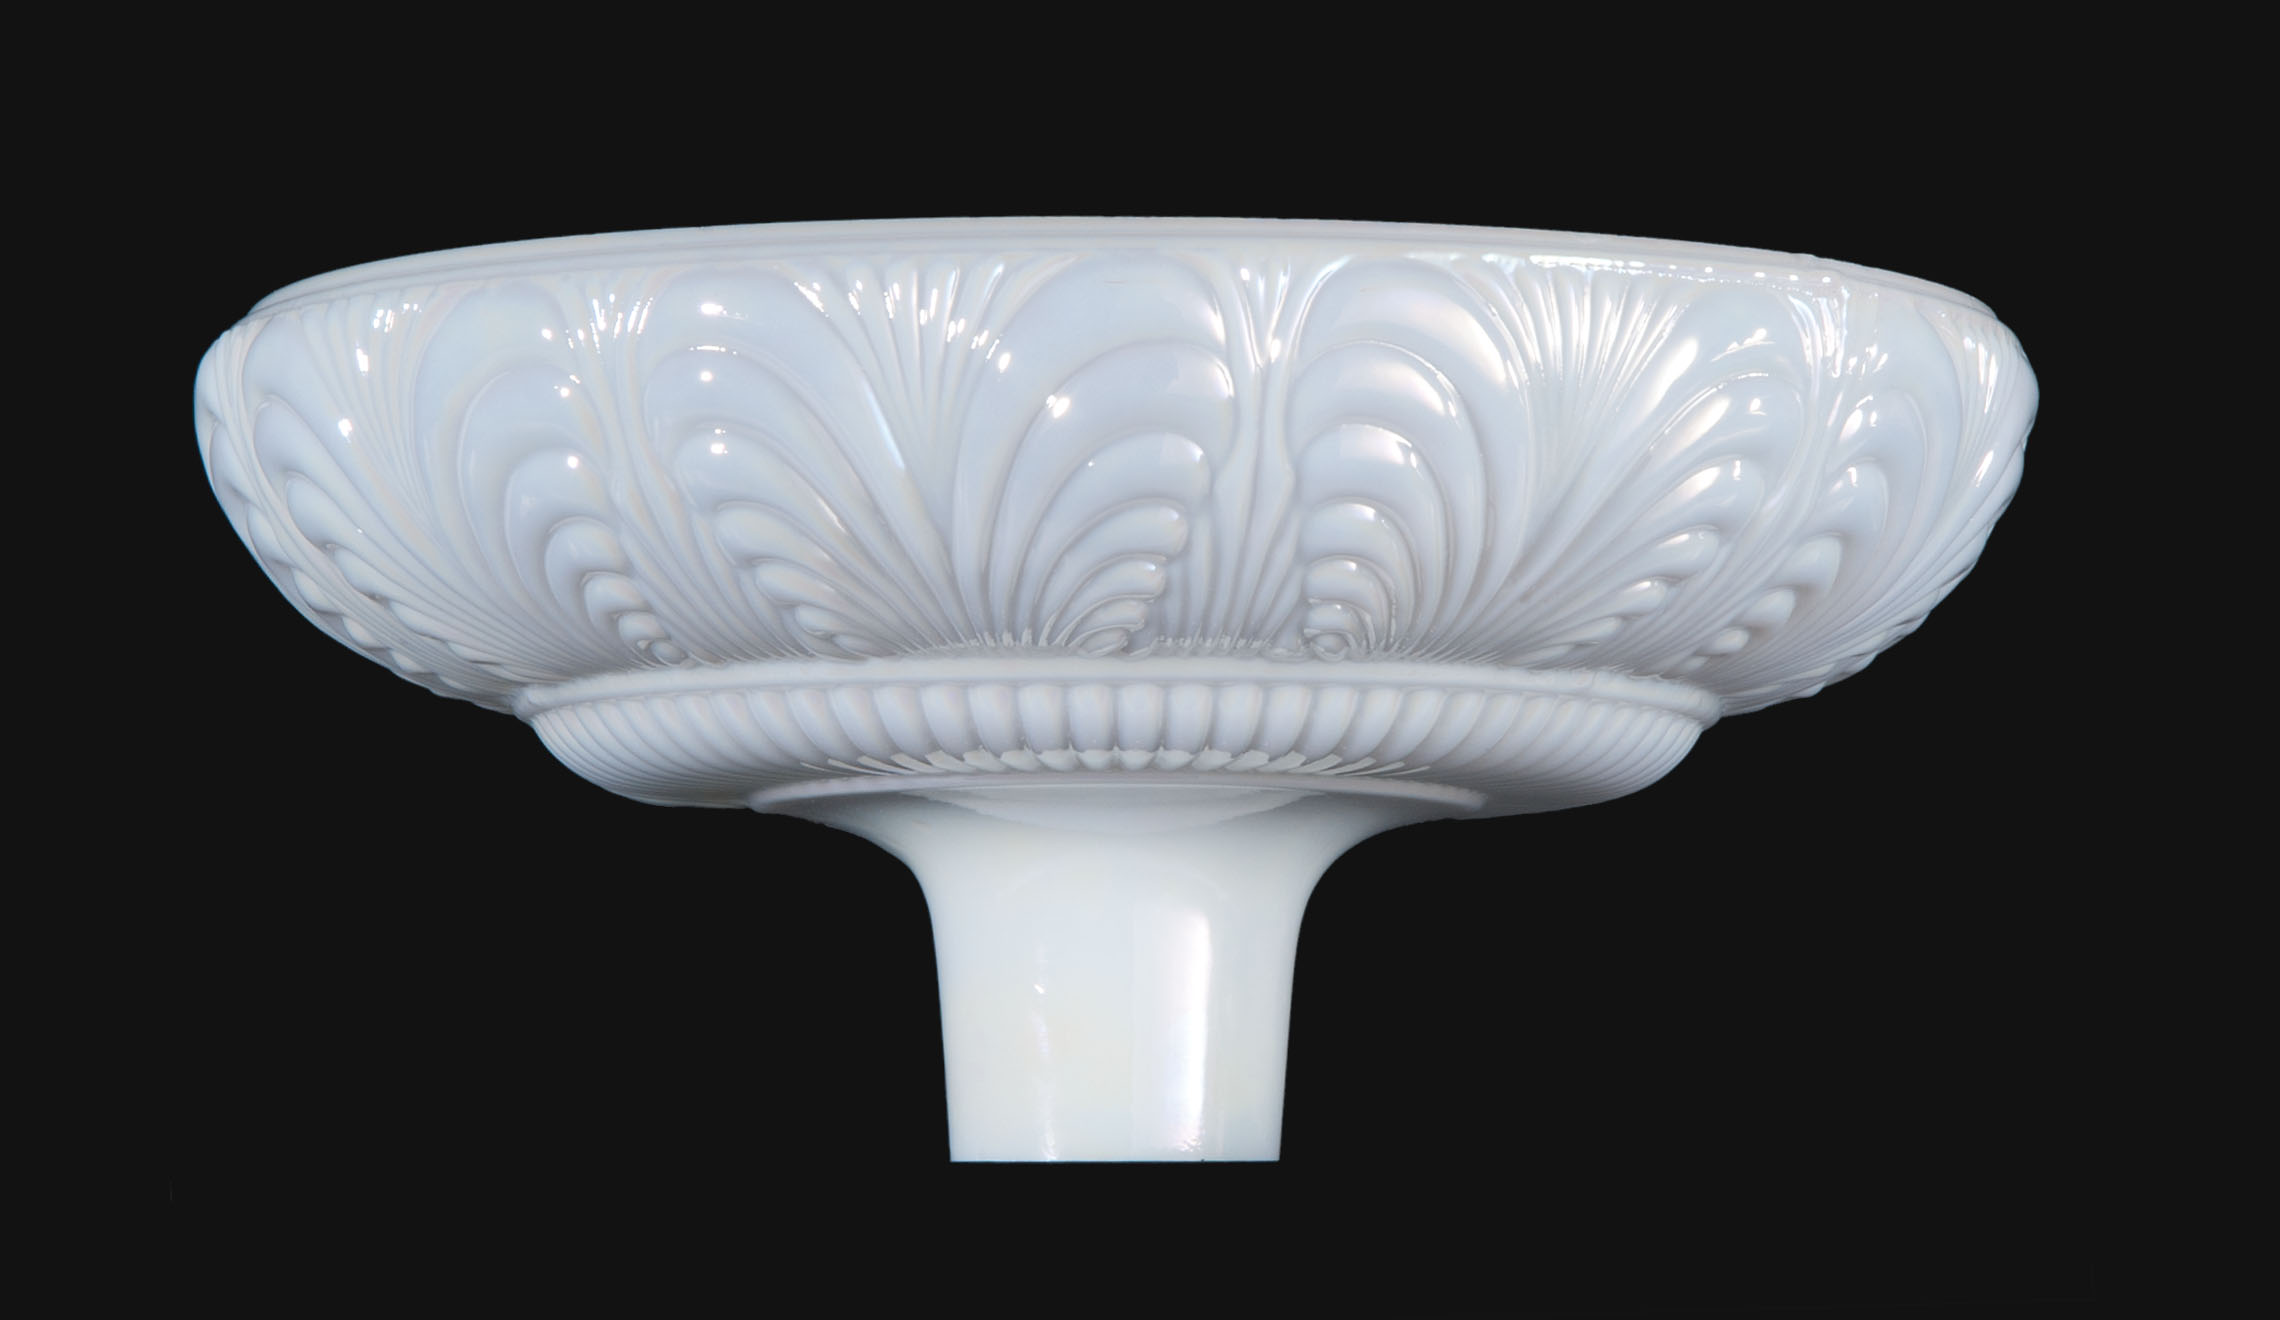 14 12 victorian style torchiere lamp shade 09091 bp lamp supply 09091 14 12 victorian style torchiere lamp shade aloadofball Gallery